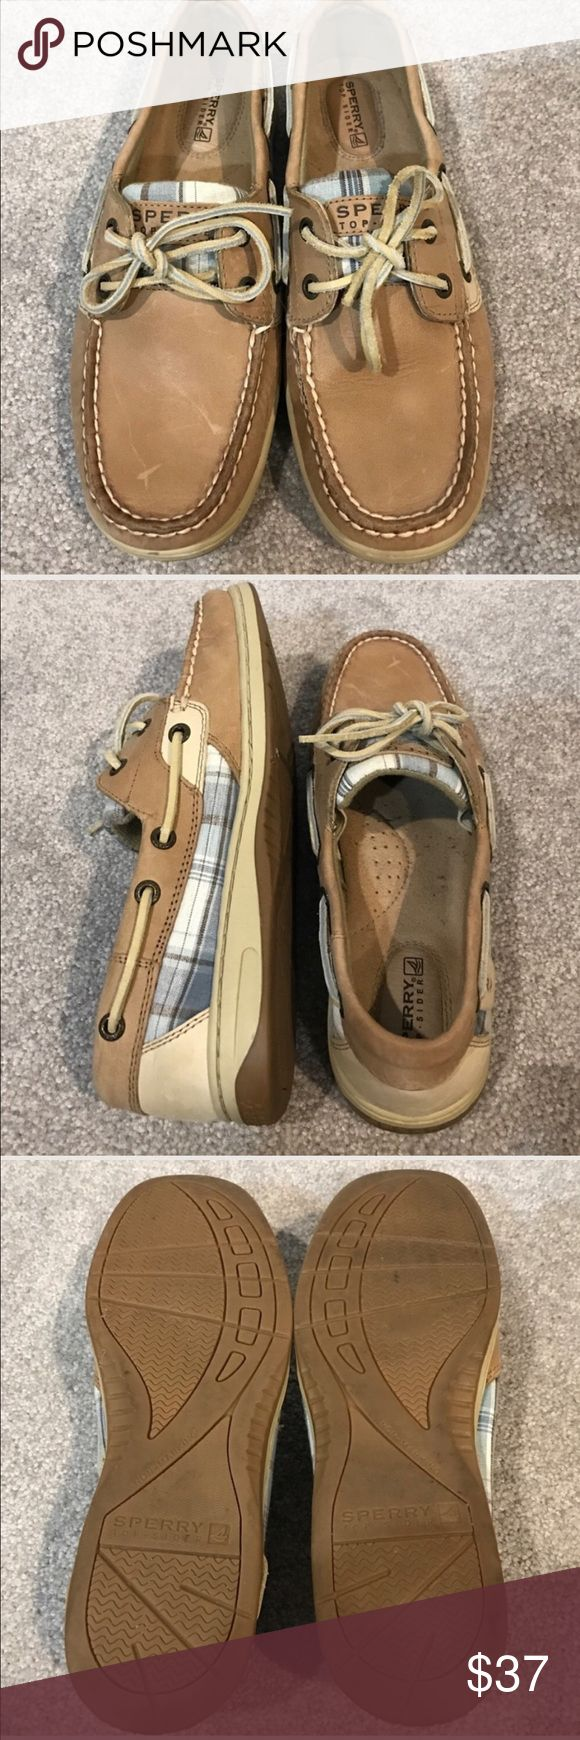 SPERRY SHOES SIZE 7M LEATHER UPPERS. SPERRY SHOES SIZE 7M LEATHER UPPERS. Very good condition. Small flaw on front of one shoe. See pic Sperry Top-Sider Shoes Flats & Loafers